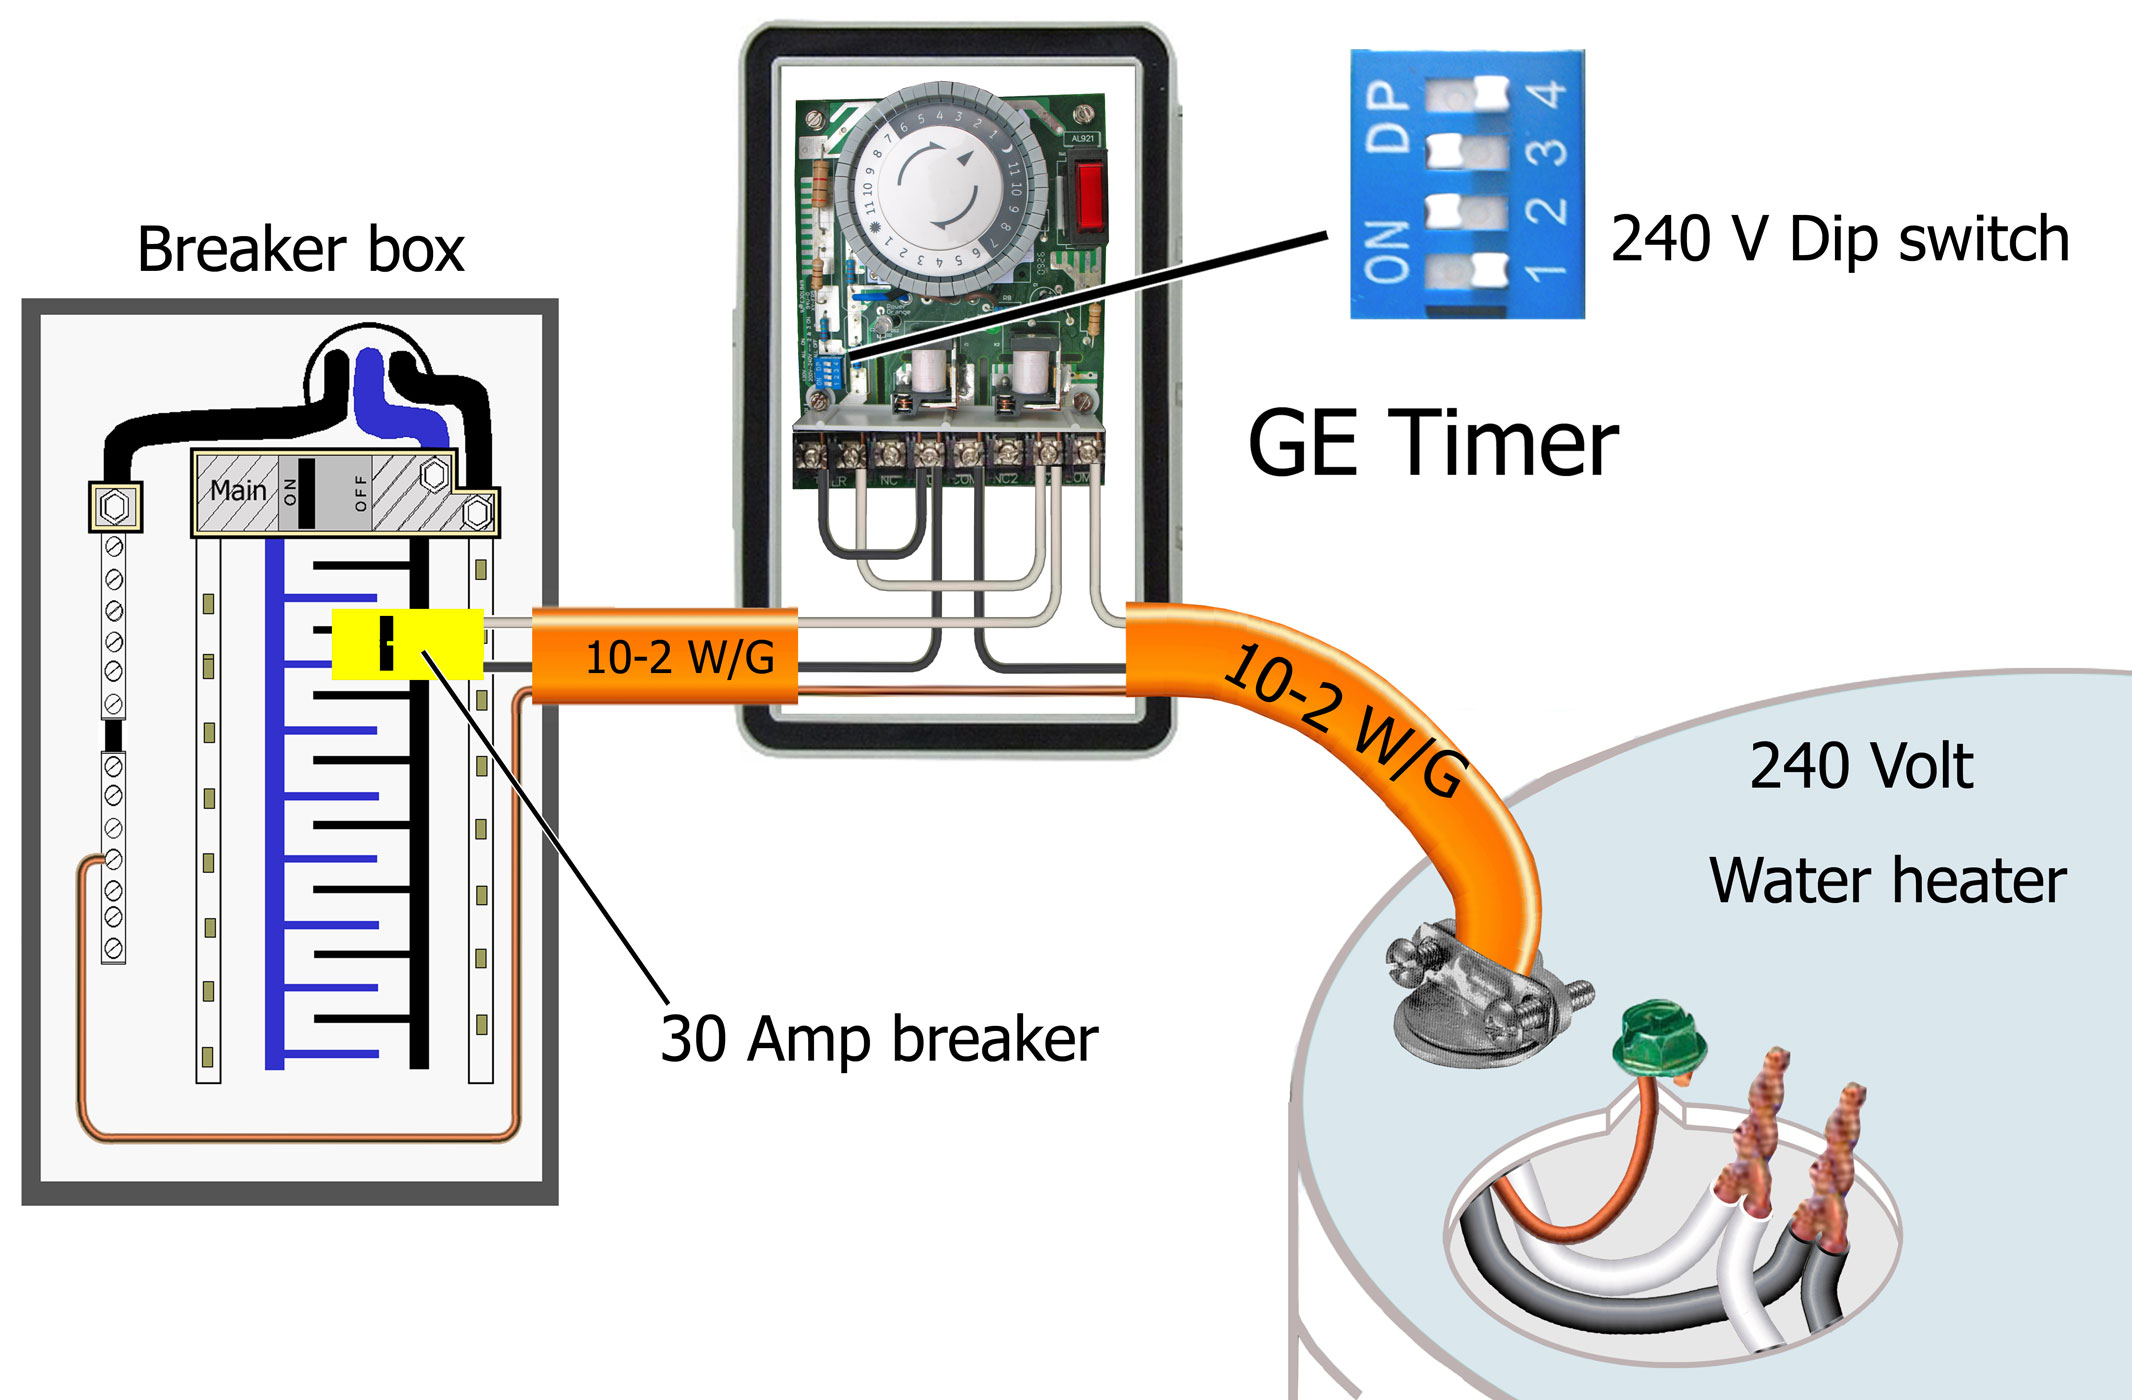 GE to water heater 500 how to wire ge 15207 timer electric hot water heater wiring diagram at gsmx.co